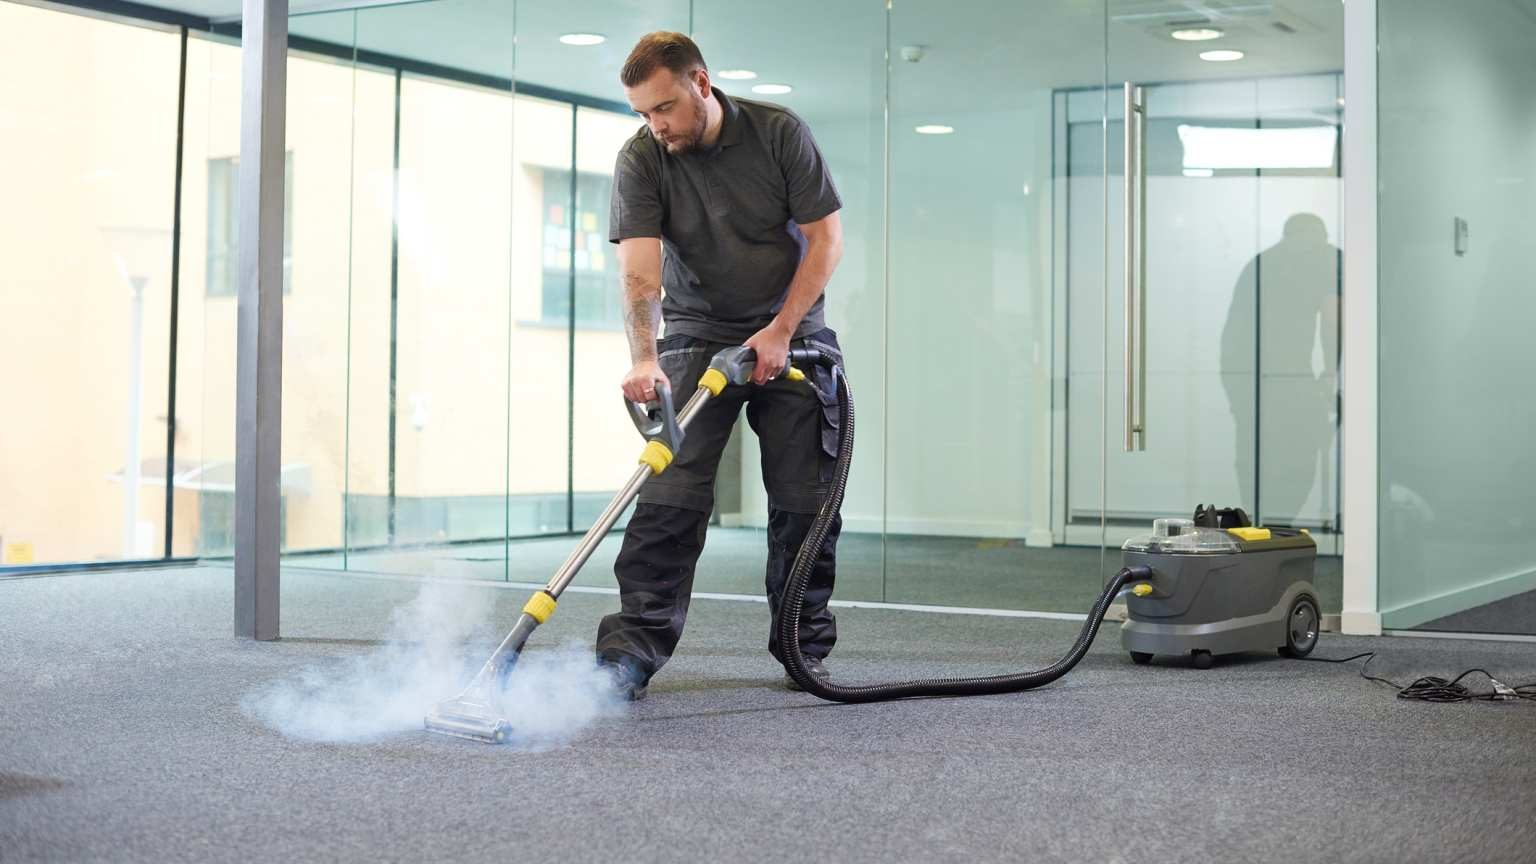 a male cleaning contractor steam cleans an office carpet in a empty office in between tenants.